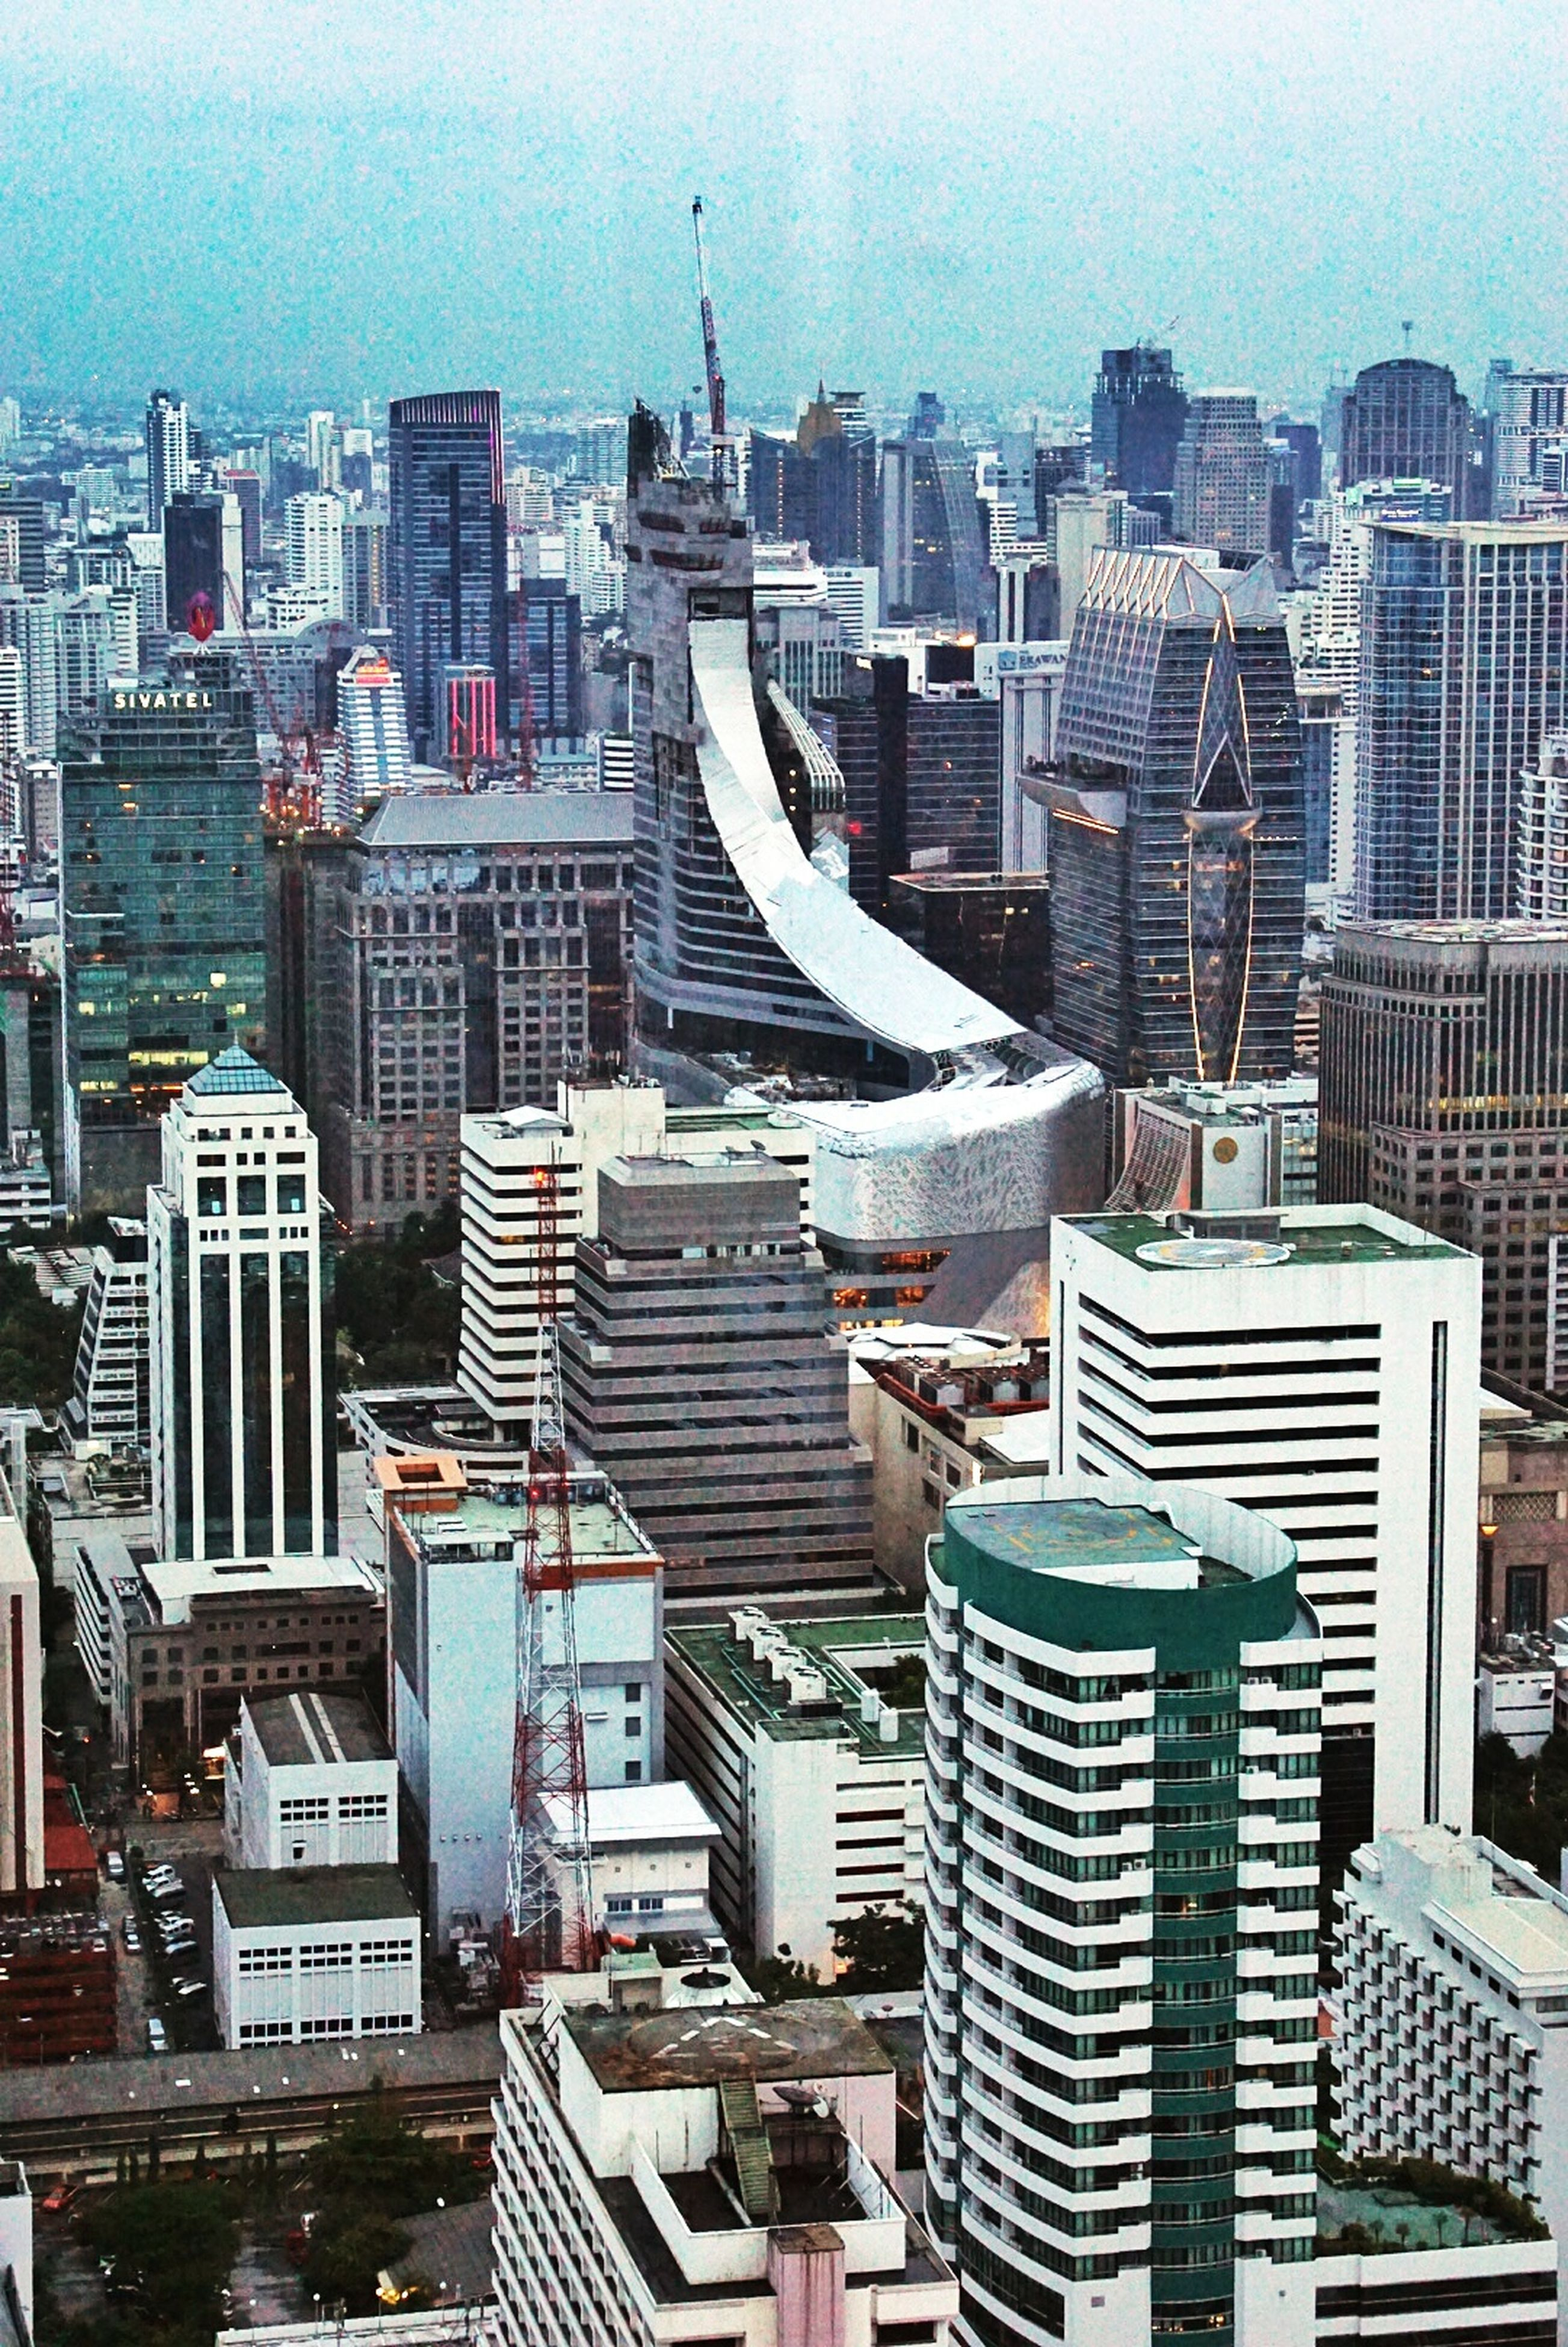 building exterior, architecture, built structure, city, cityscape, crowded, high angle view, skyscraper, modern, residential district, office building, residential building, sky, tower, residential structure, roof, tall - high, city life, day, outdoors